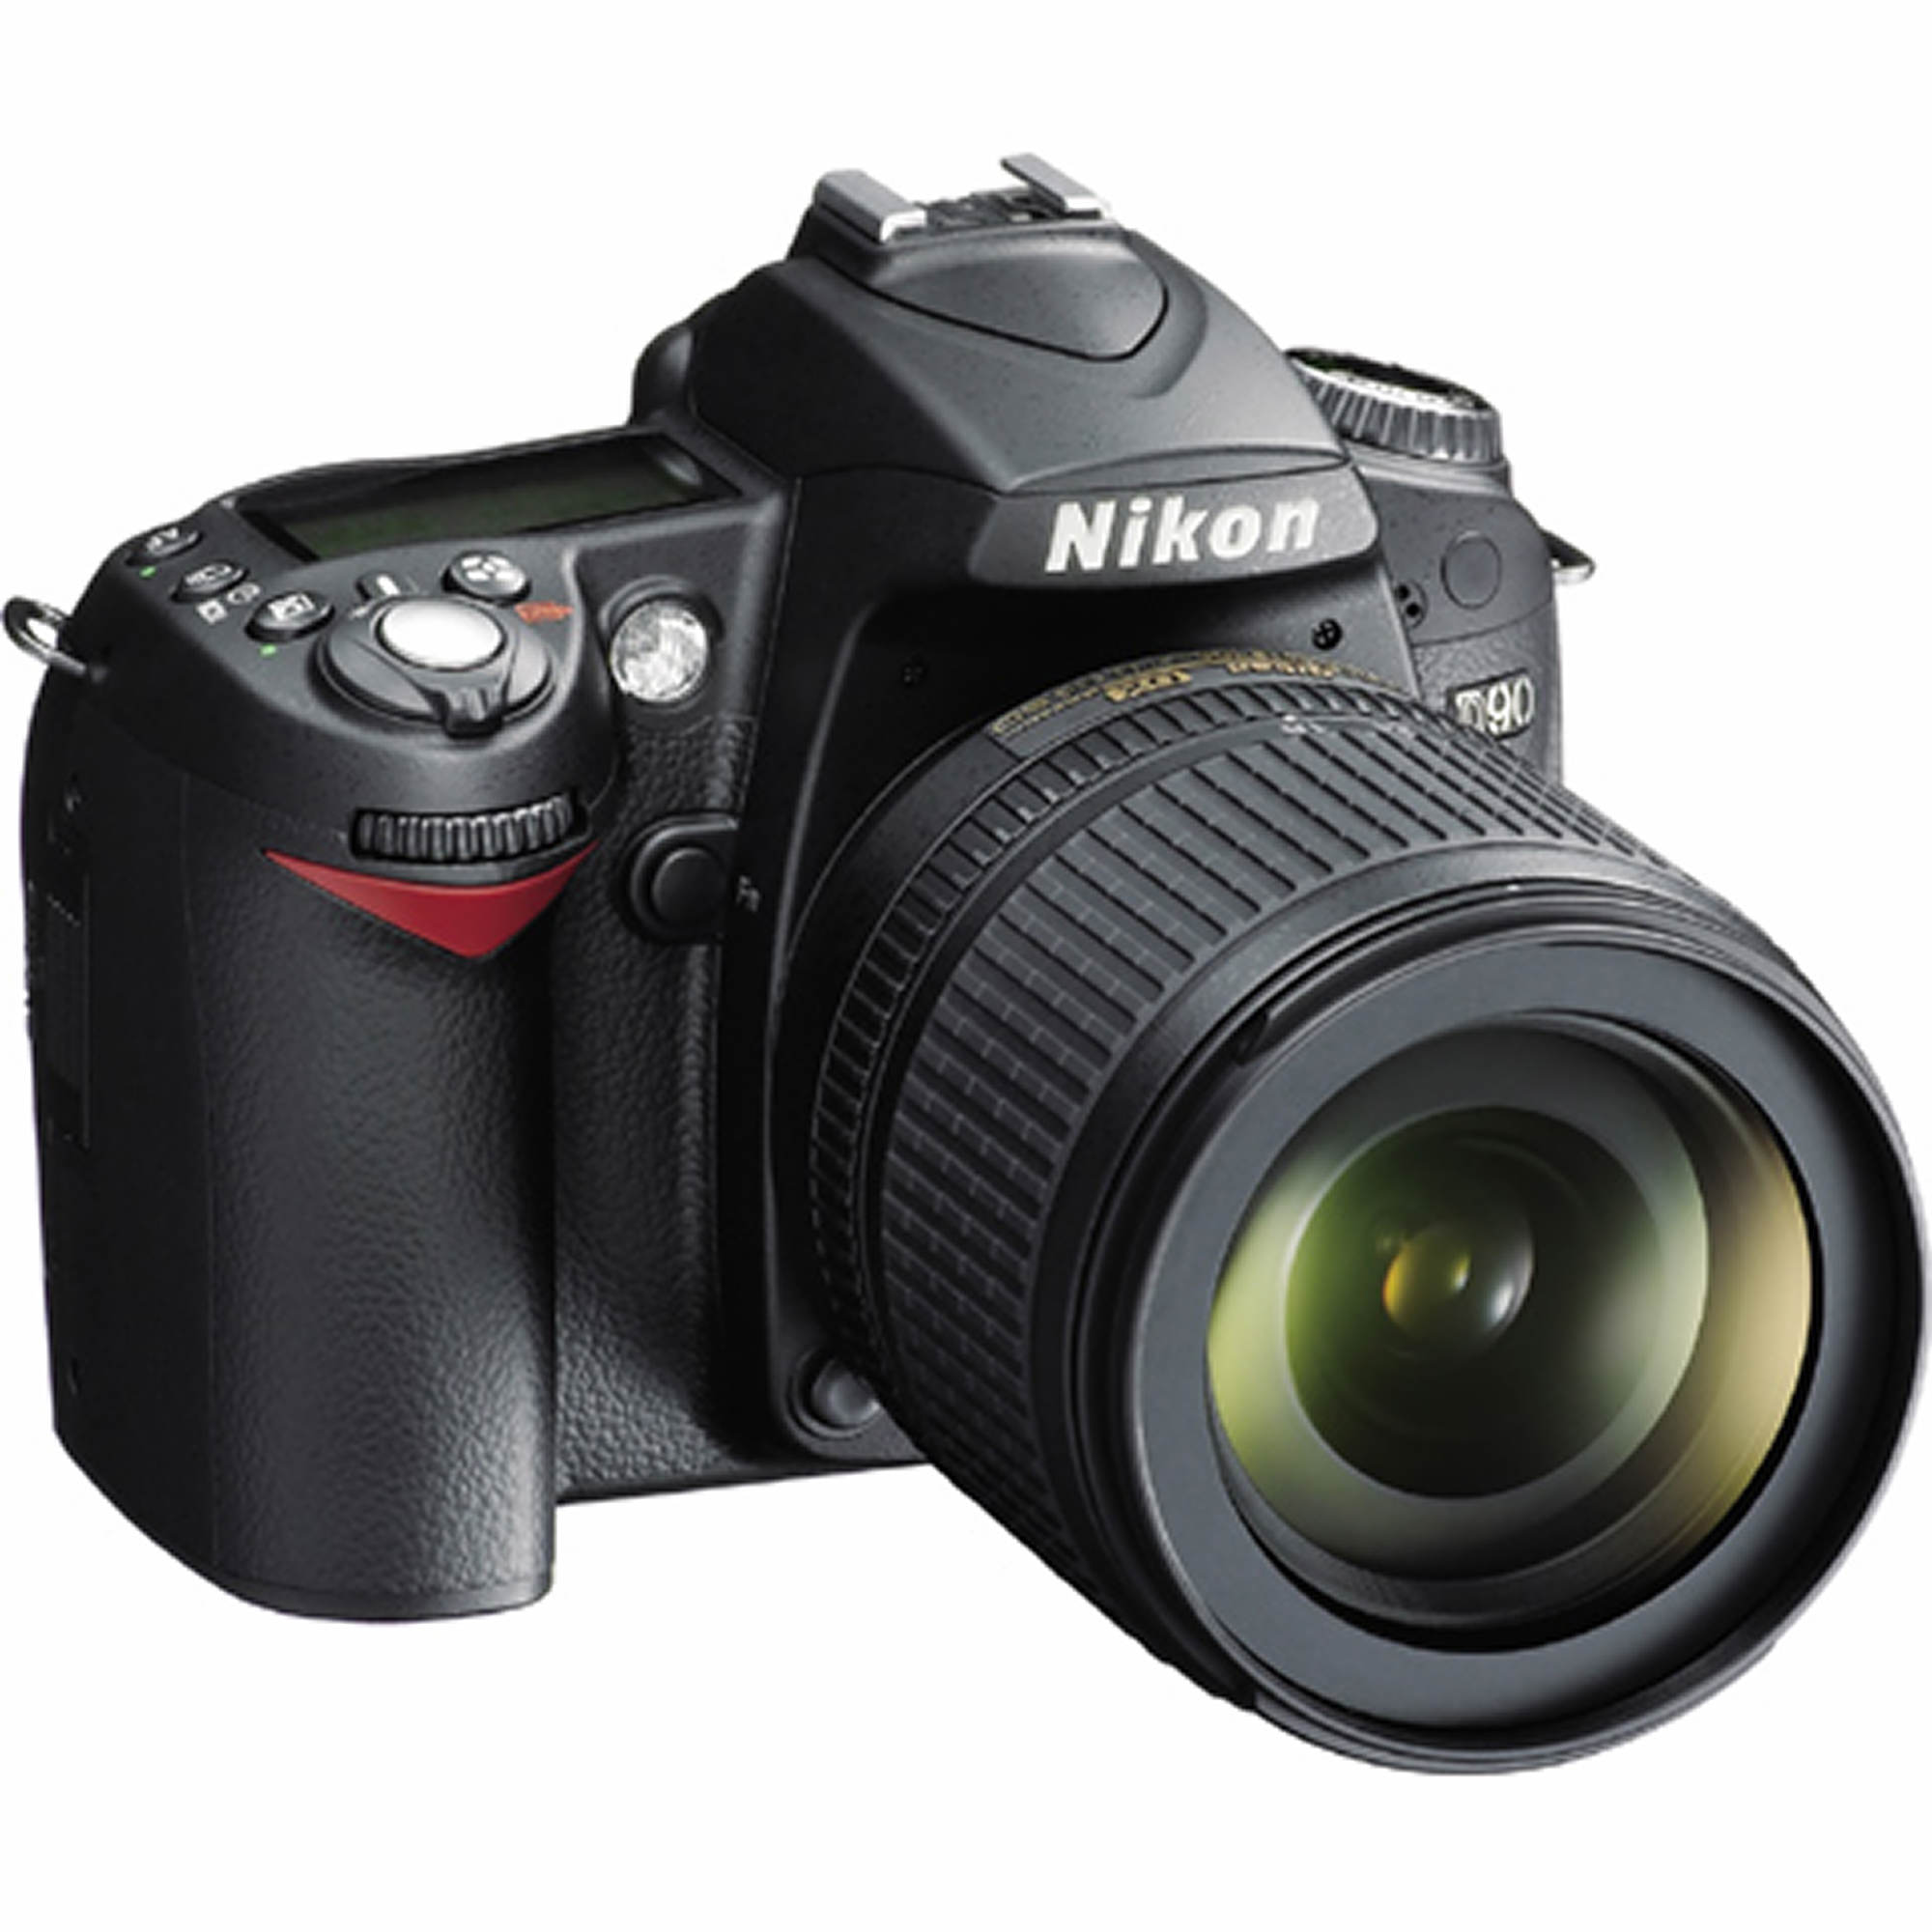 "Nikon D90 12.3MP 3"" LCD 5.8x Optical Zoom DX-Format Digital SLR Camera with NIKKOR 18-105mm VR Lens"